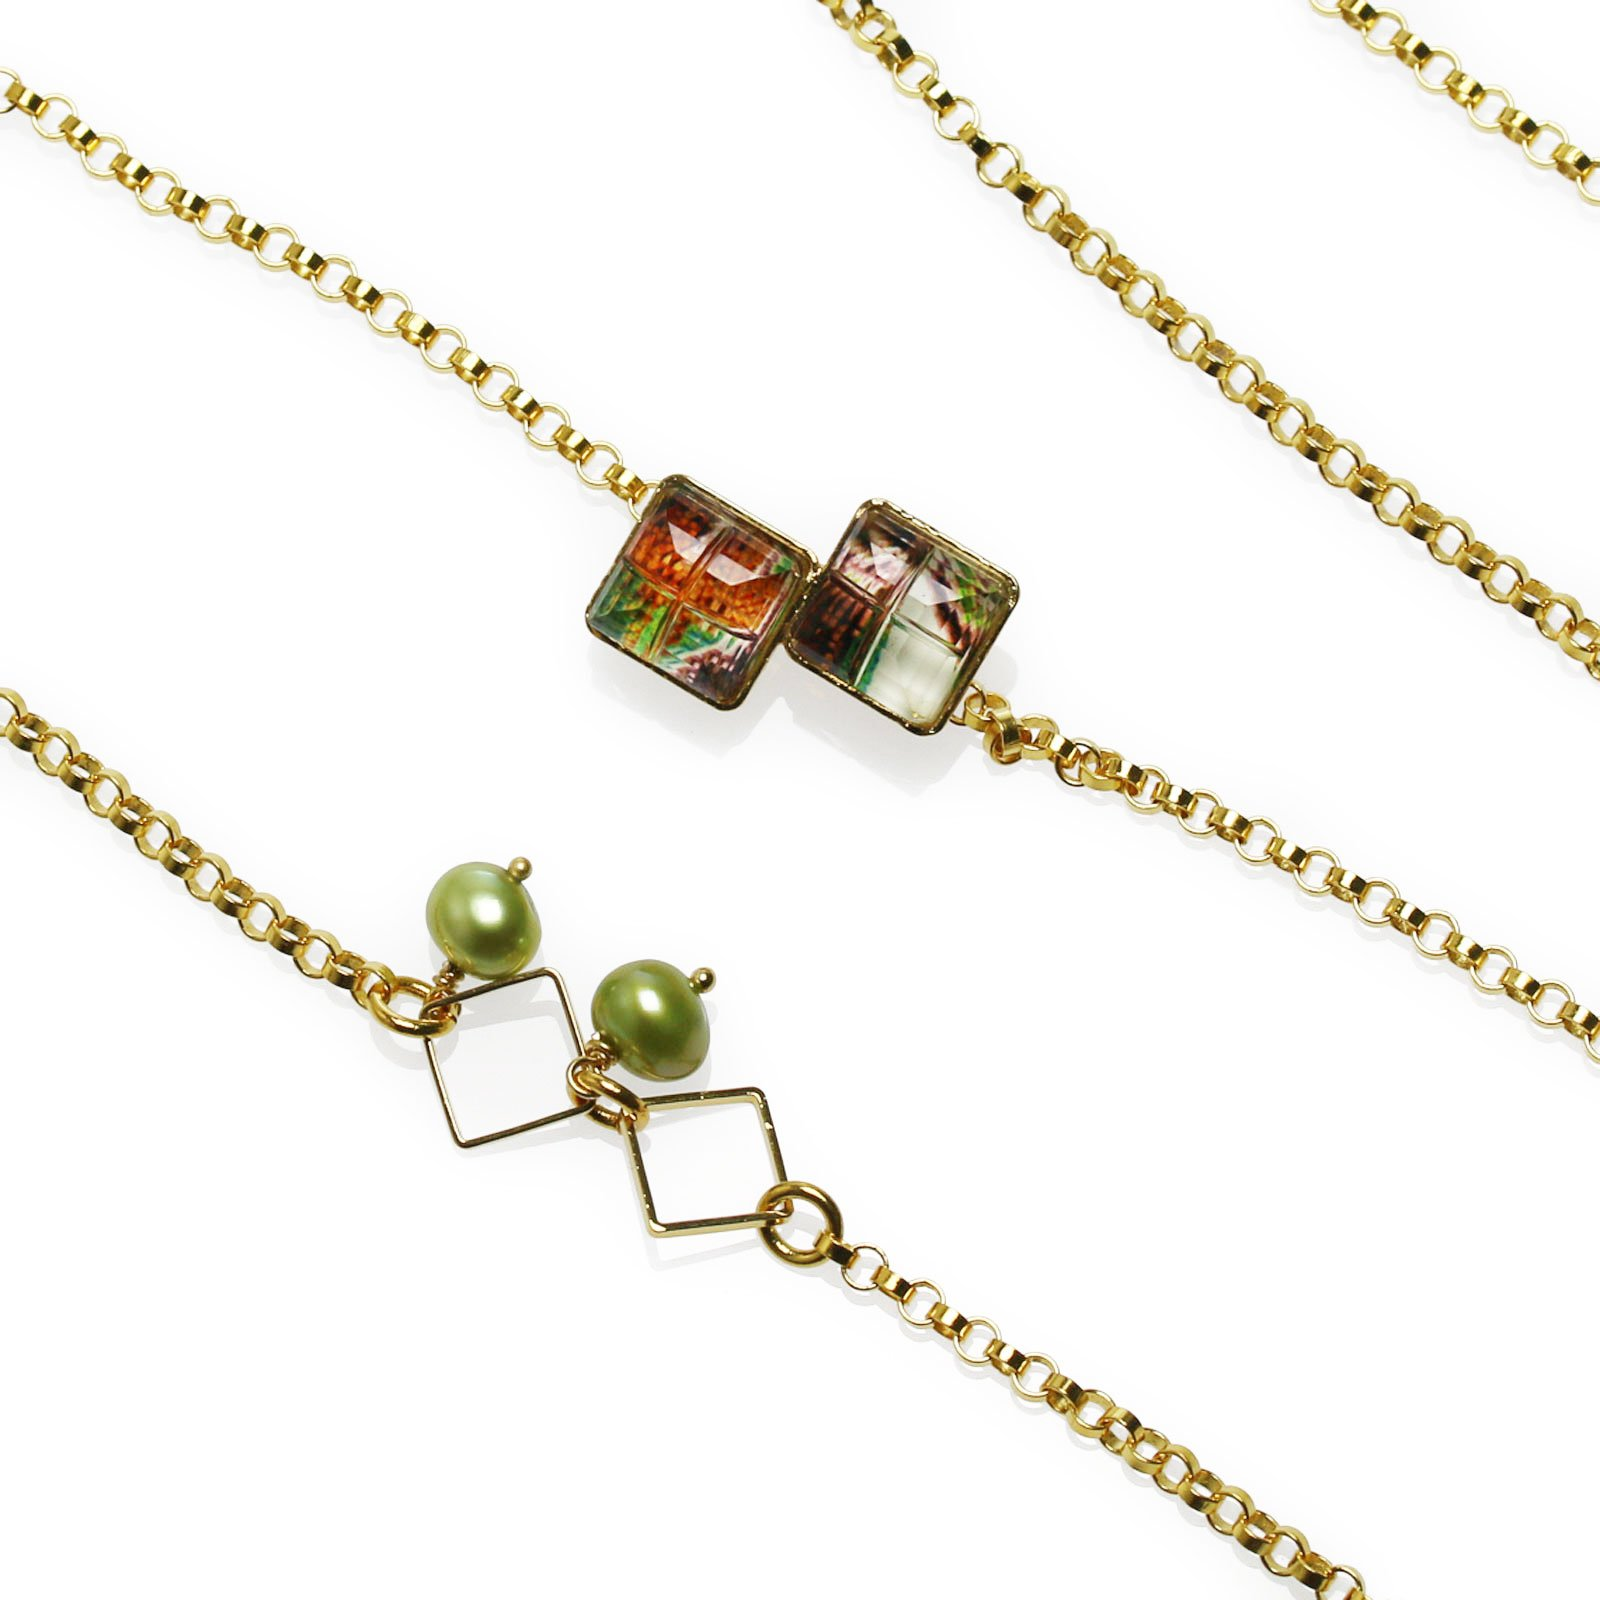 Tamarusan Glasses Chain Freshwater Pearl Gold Pansy Golden Square